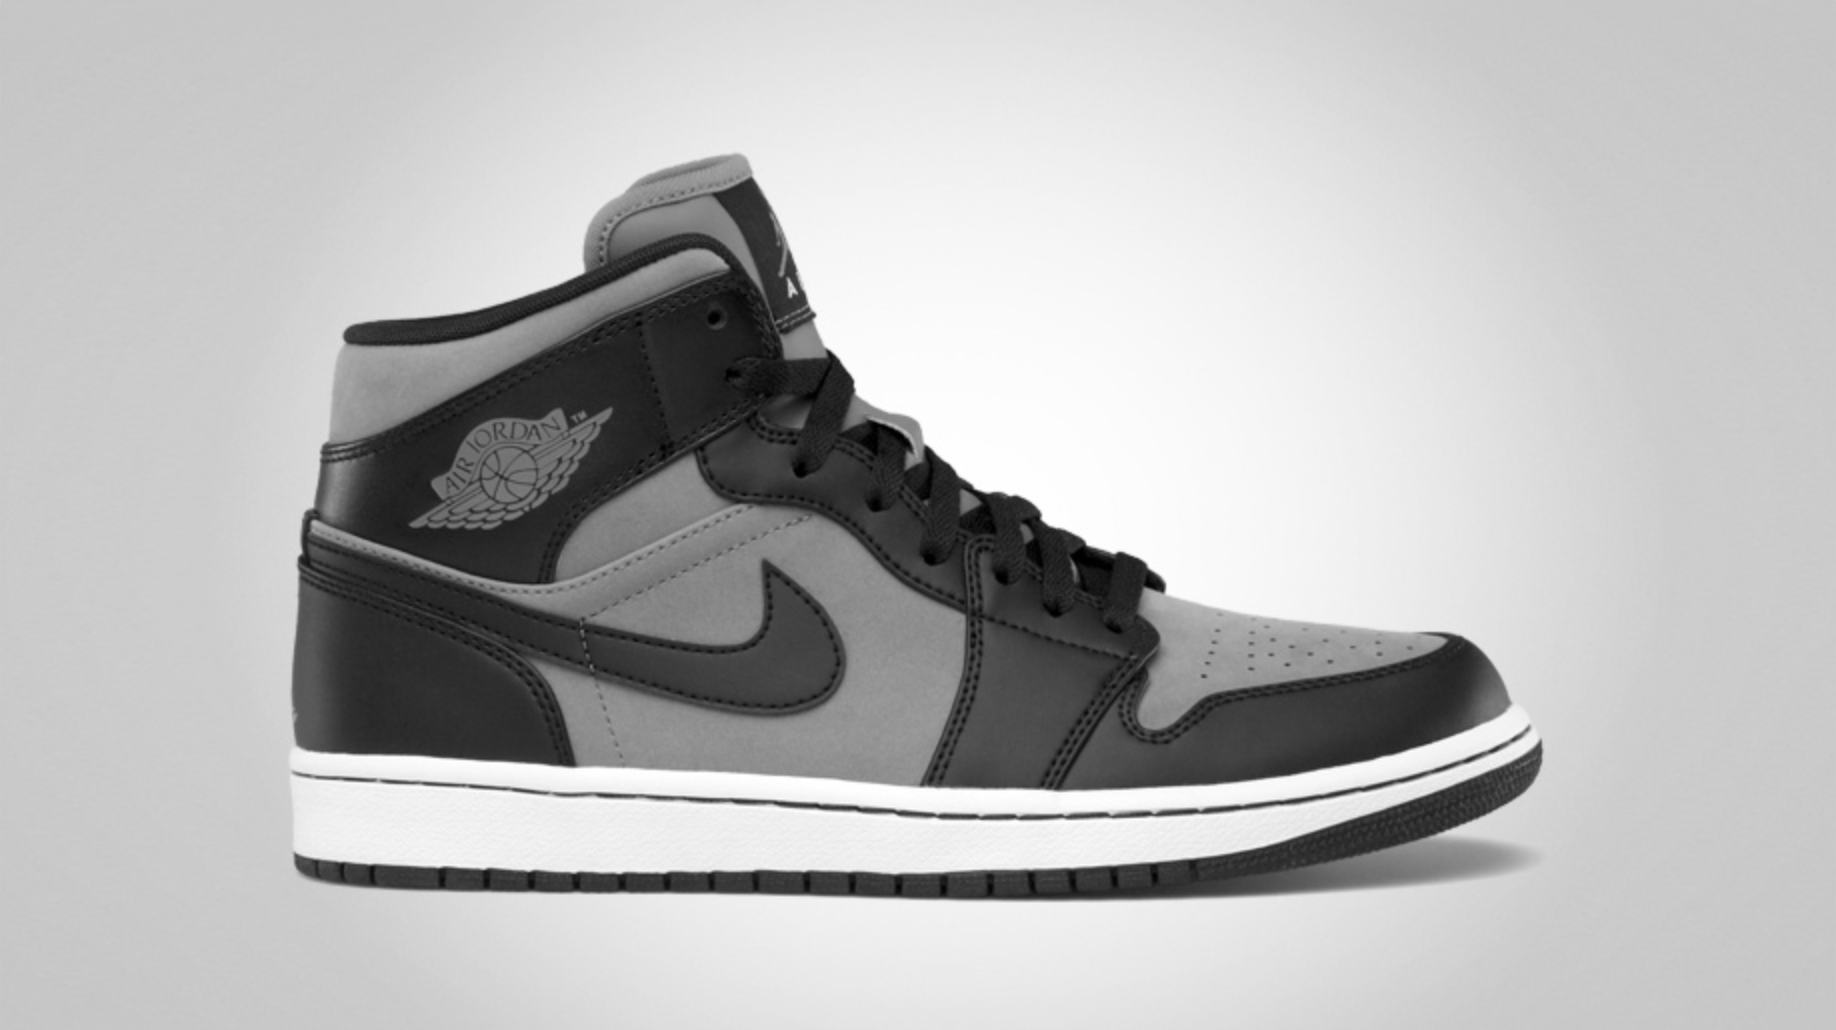 Air Jordan 1 Phat 'Cool Grey/Black-White' - Official Images